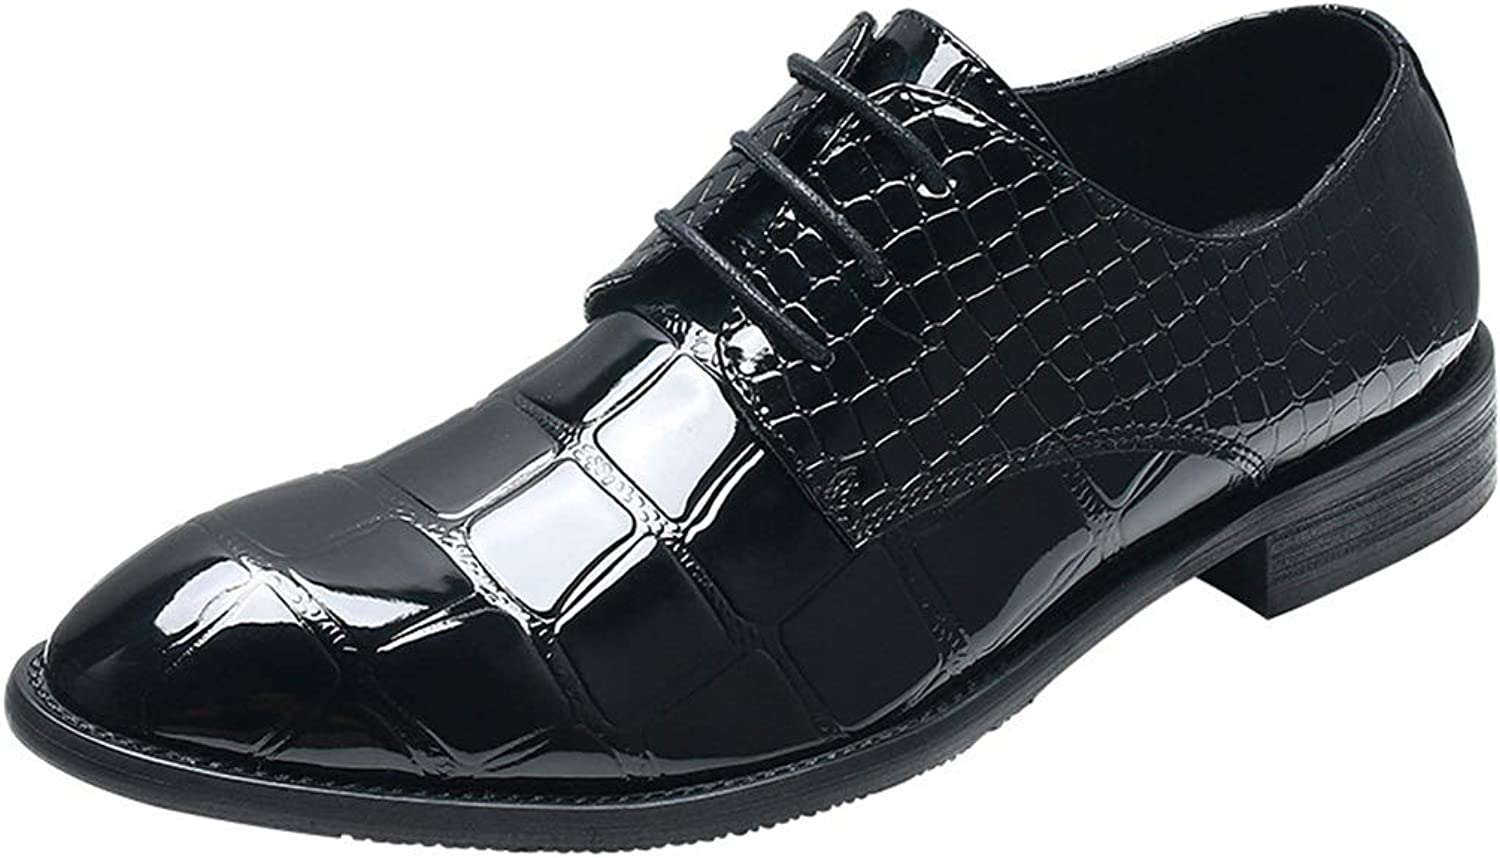 Men's shoes, Microfiber Leather British Business Pointed Casual Lace-up Low-top shoes for Wedding Casual Party & Evening (color   Black, Size   43)